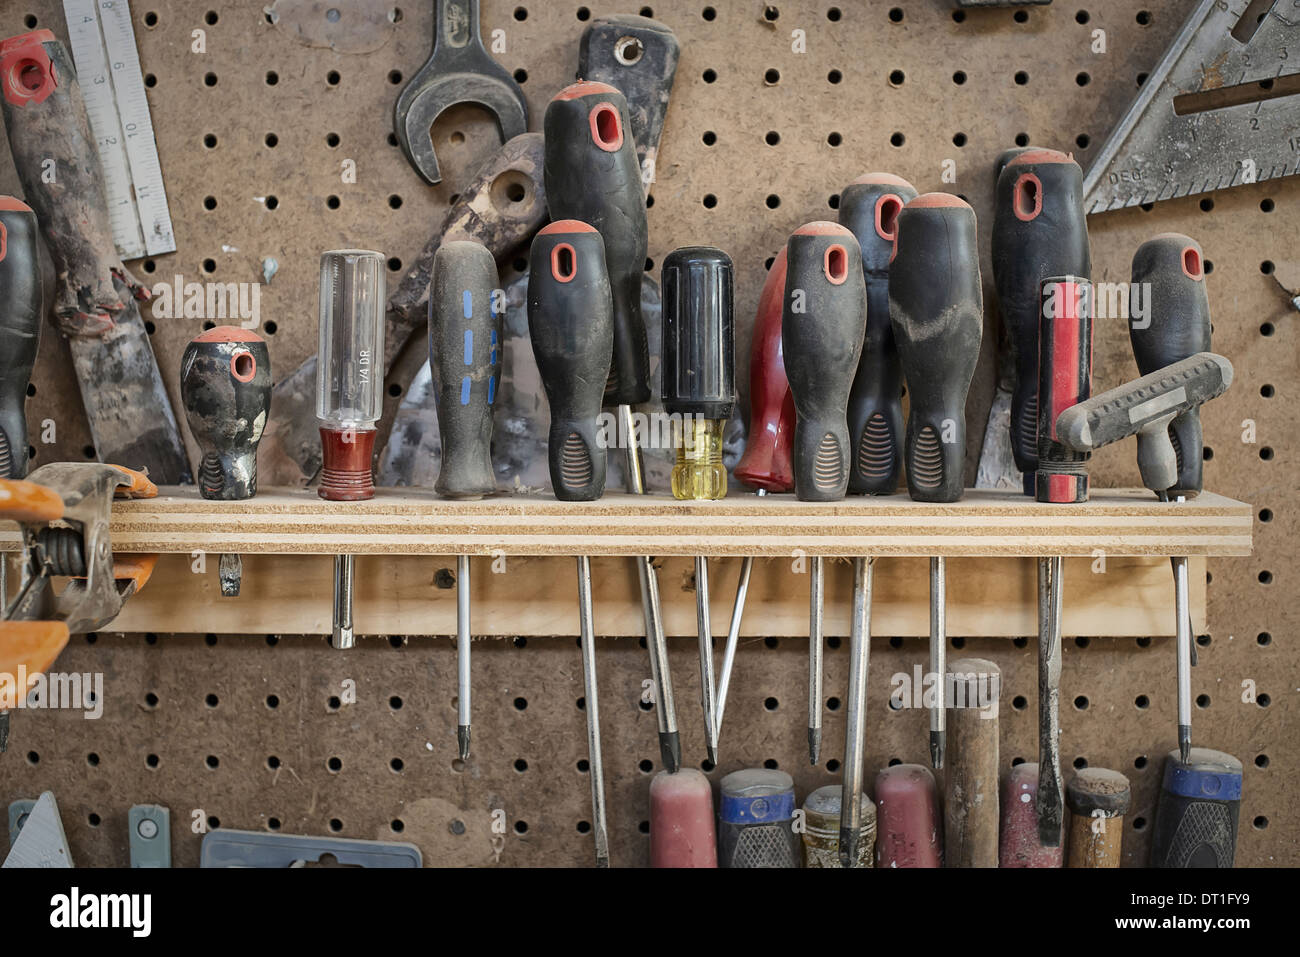 A reclaimed lumber workshop A tool board with slots for screwdrivers and handheld woodworking tools - Stock Image